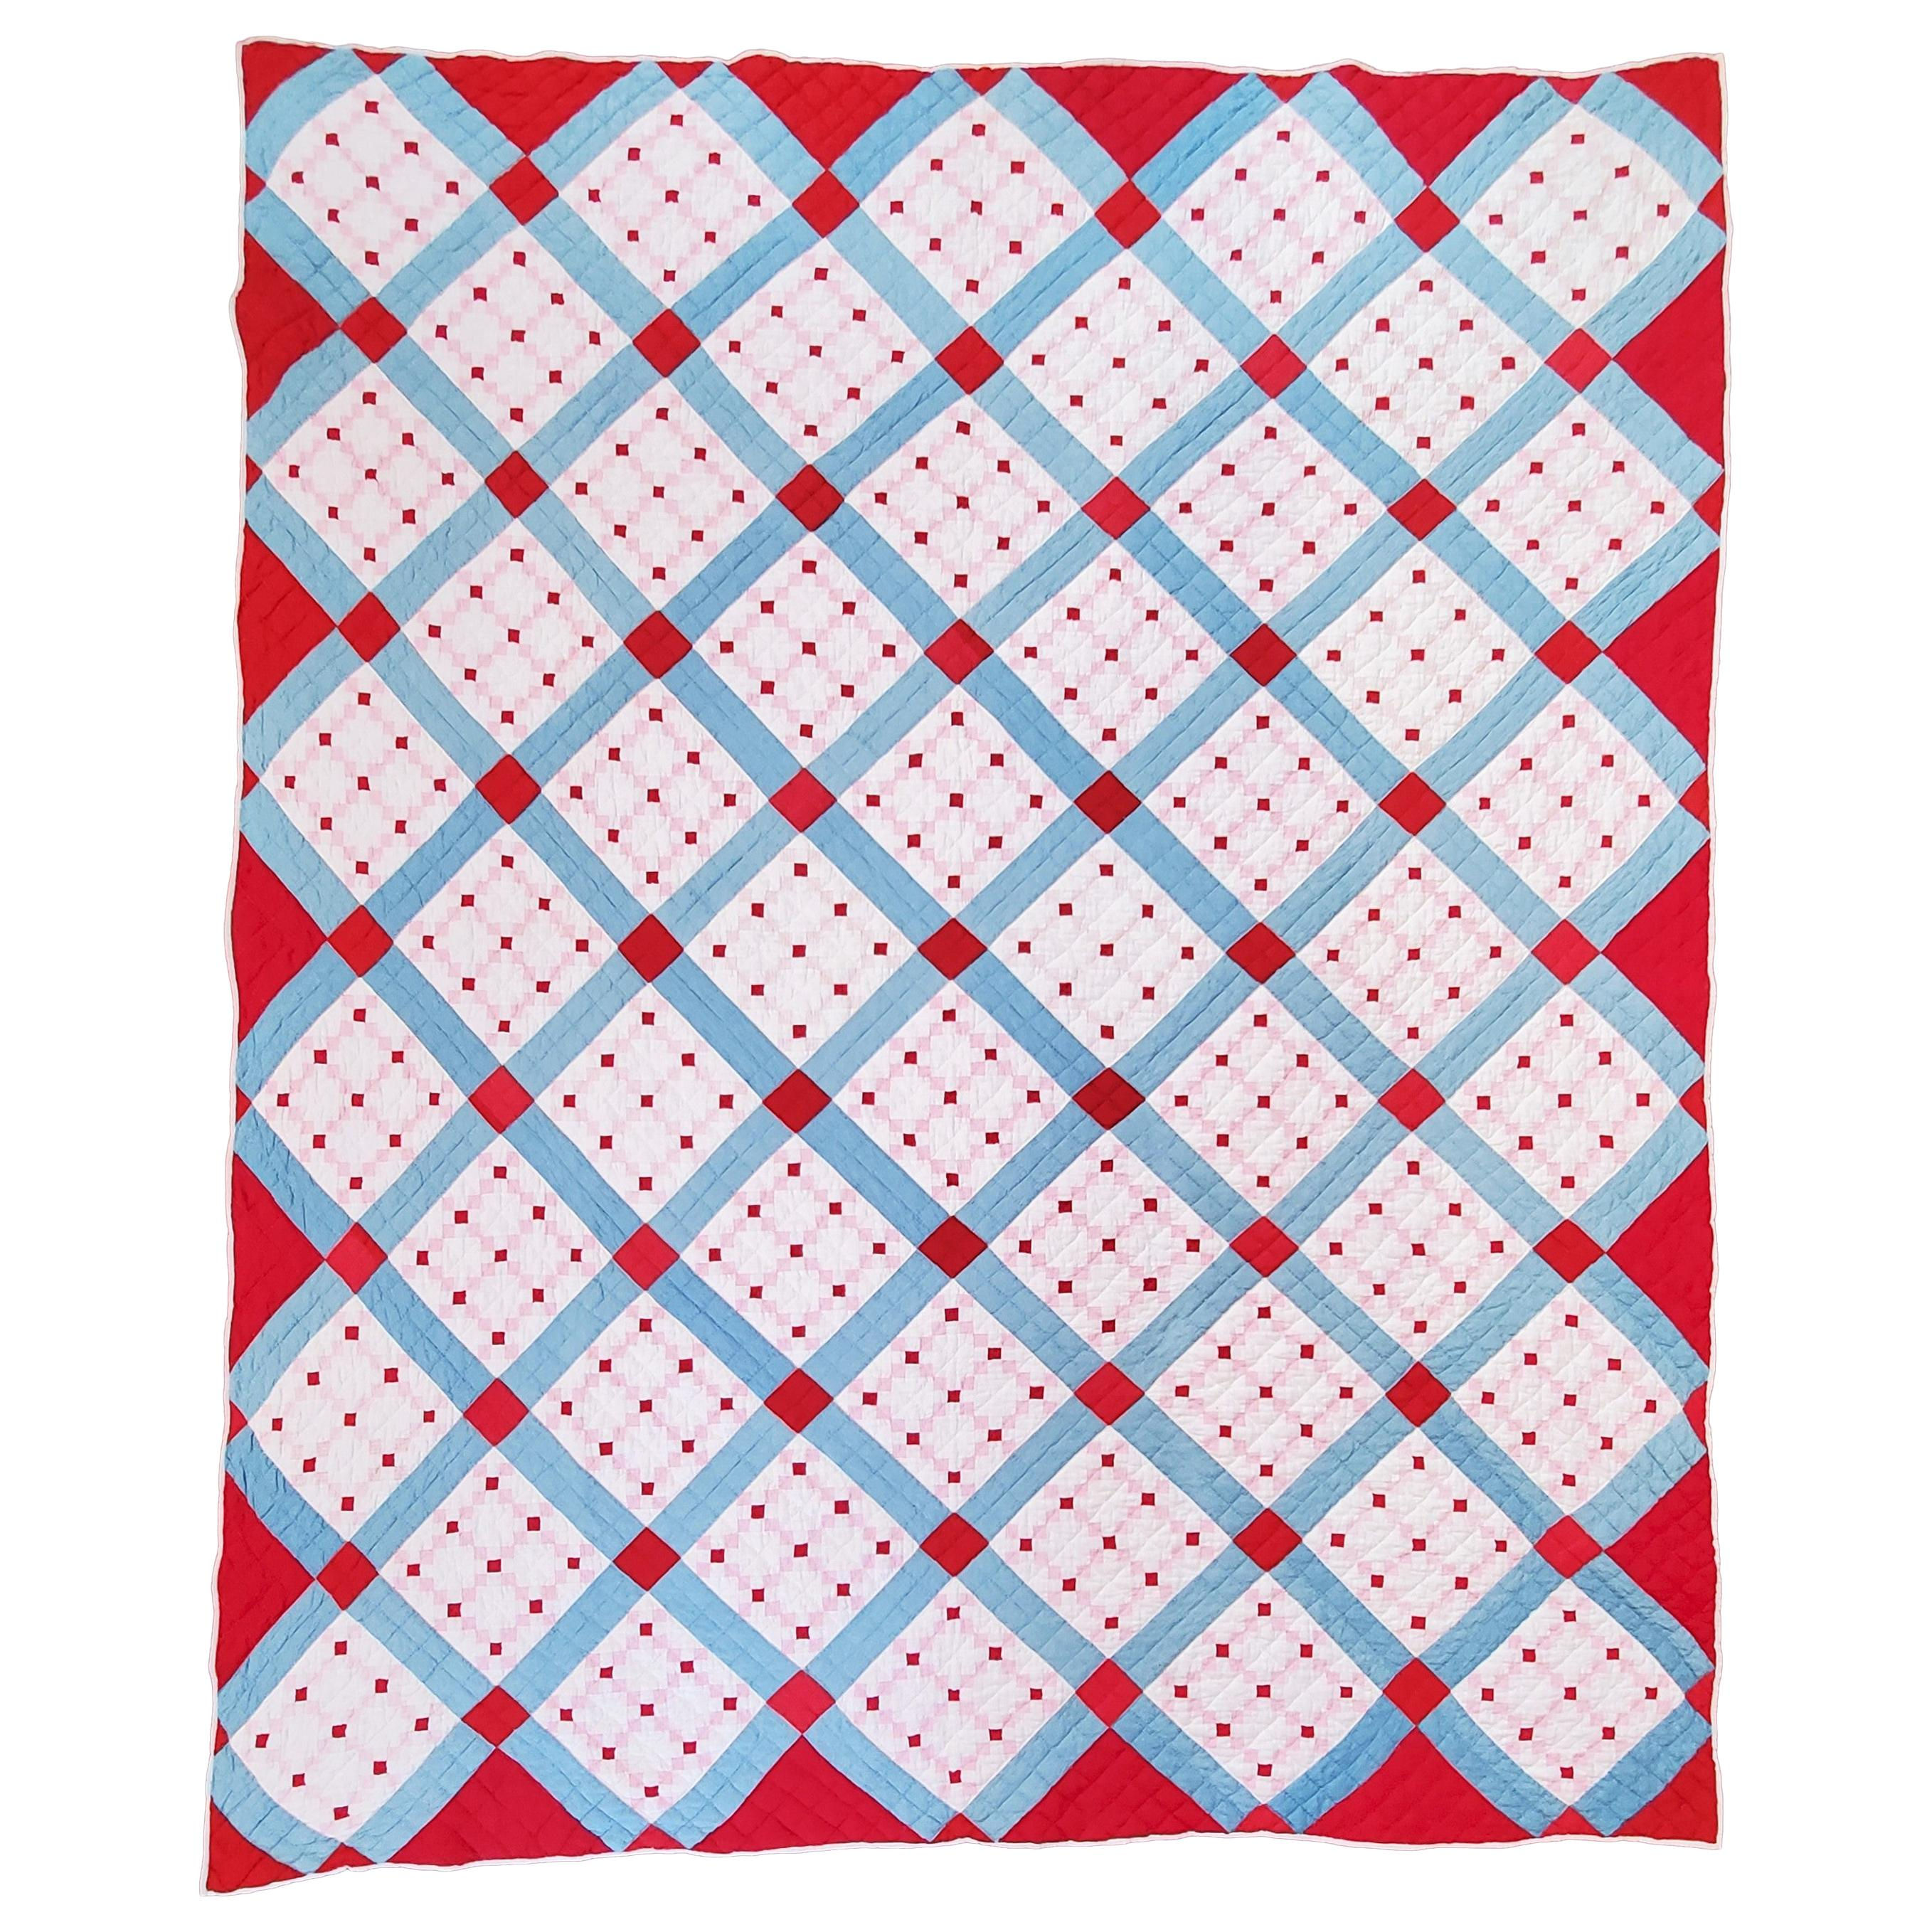 Early 20th C Postage Stamp Quilt